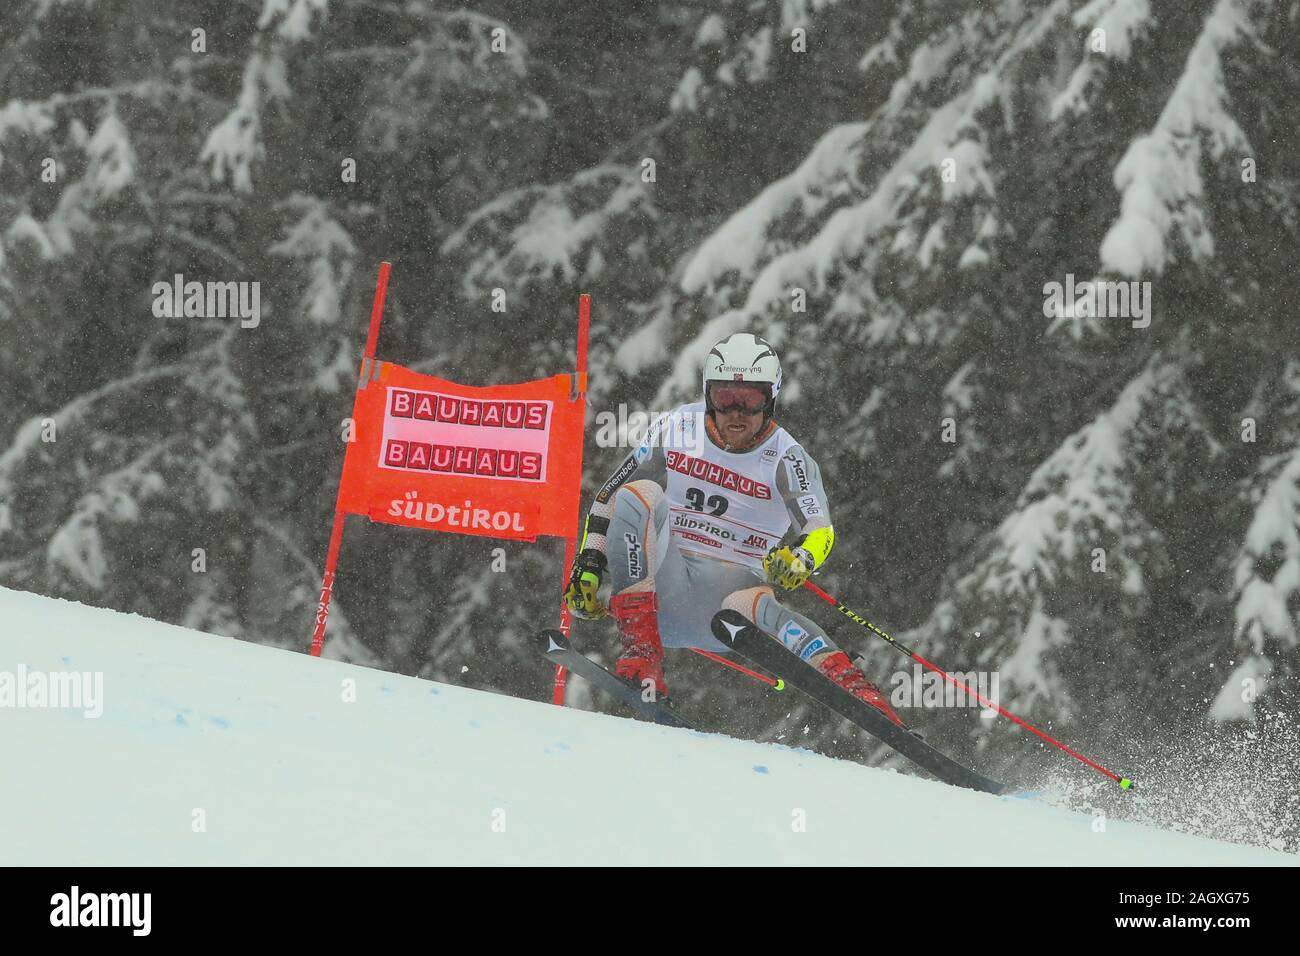 Alta Badia, Italy. 22nd Dec, 2019. Giant Slalom Men, Ski in Alta Badia, Italy, December 22 2019 Credit: Independent Photo Agency/Alamy Live News Stock Photo